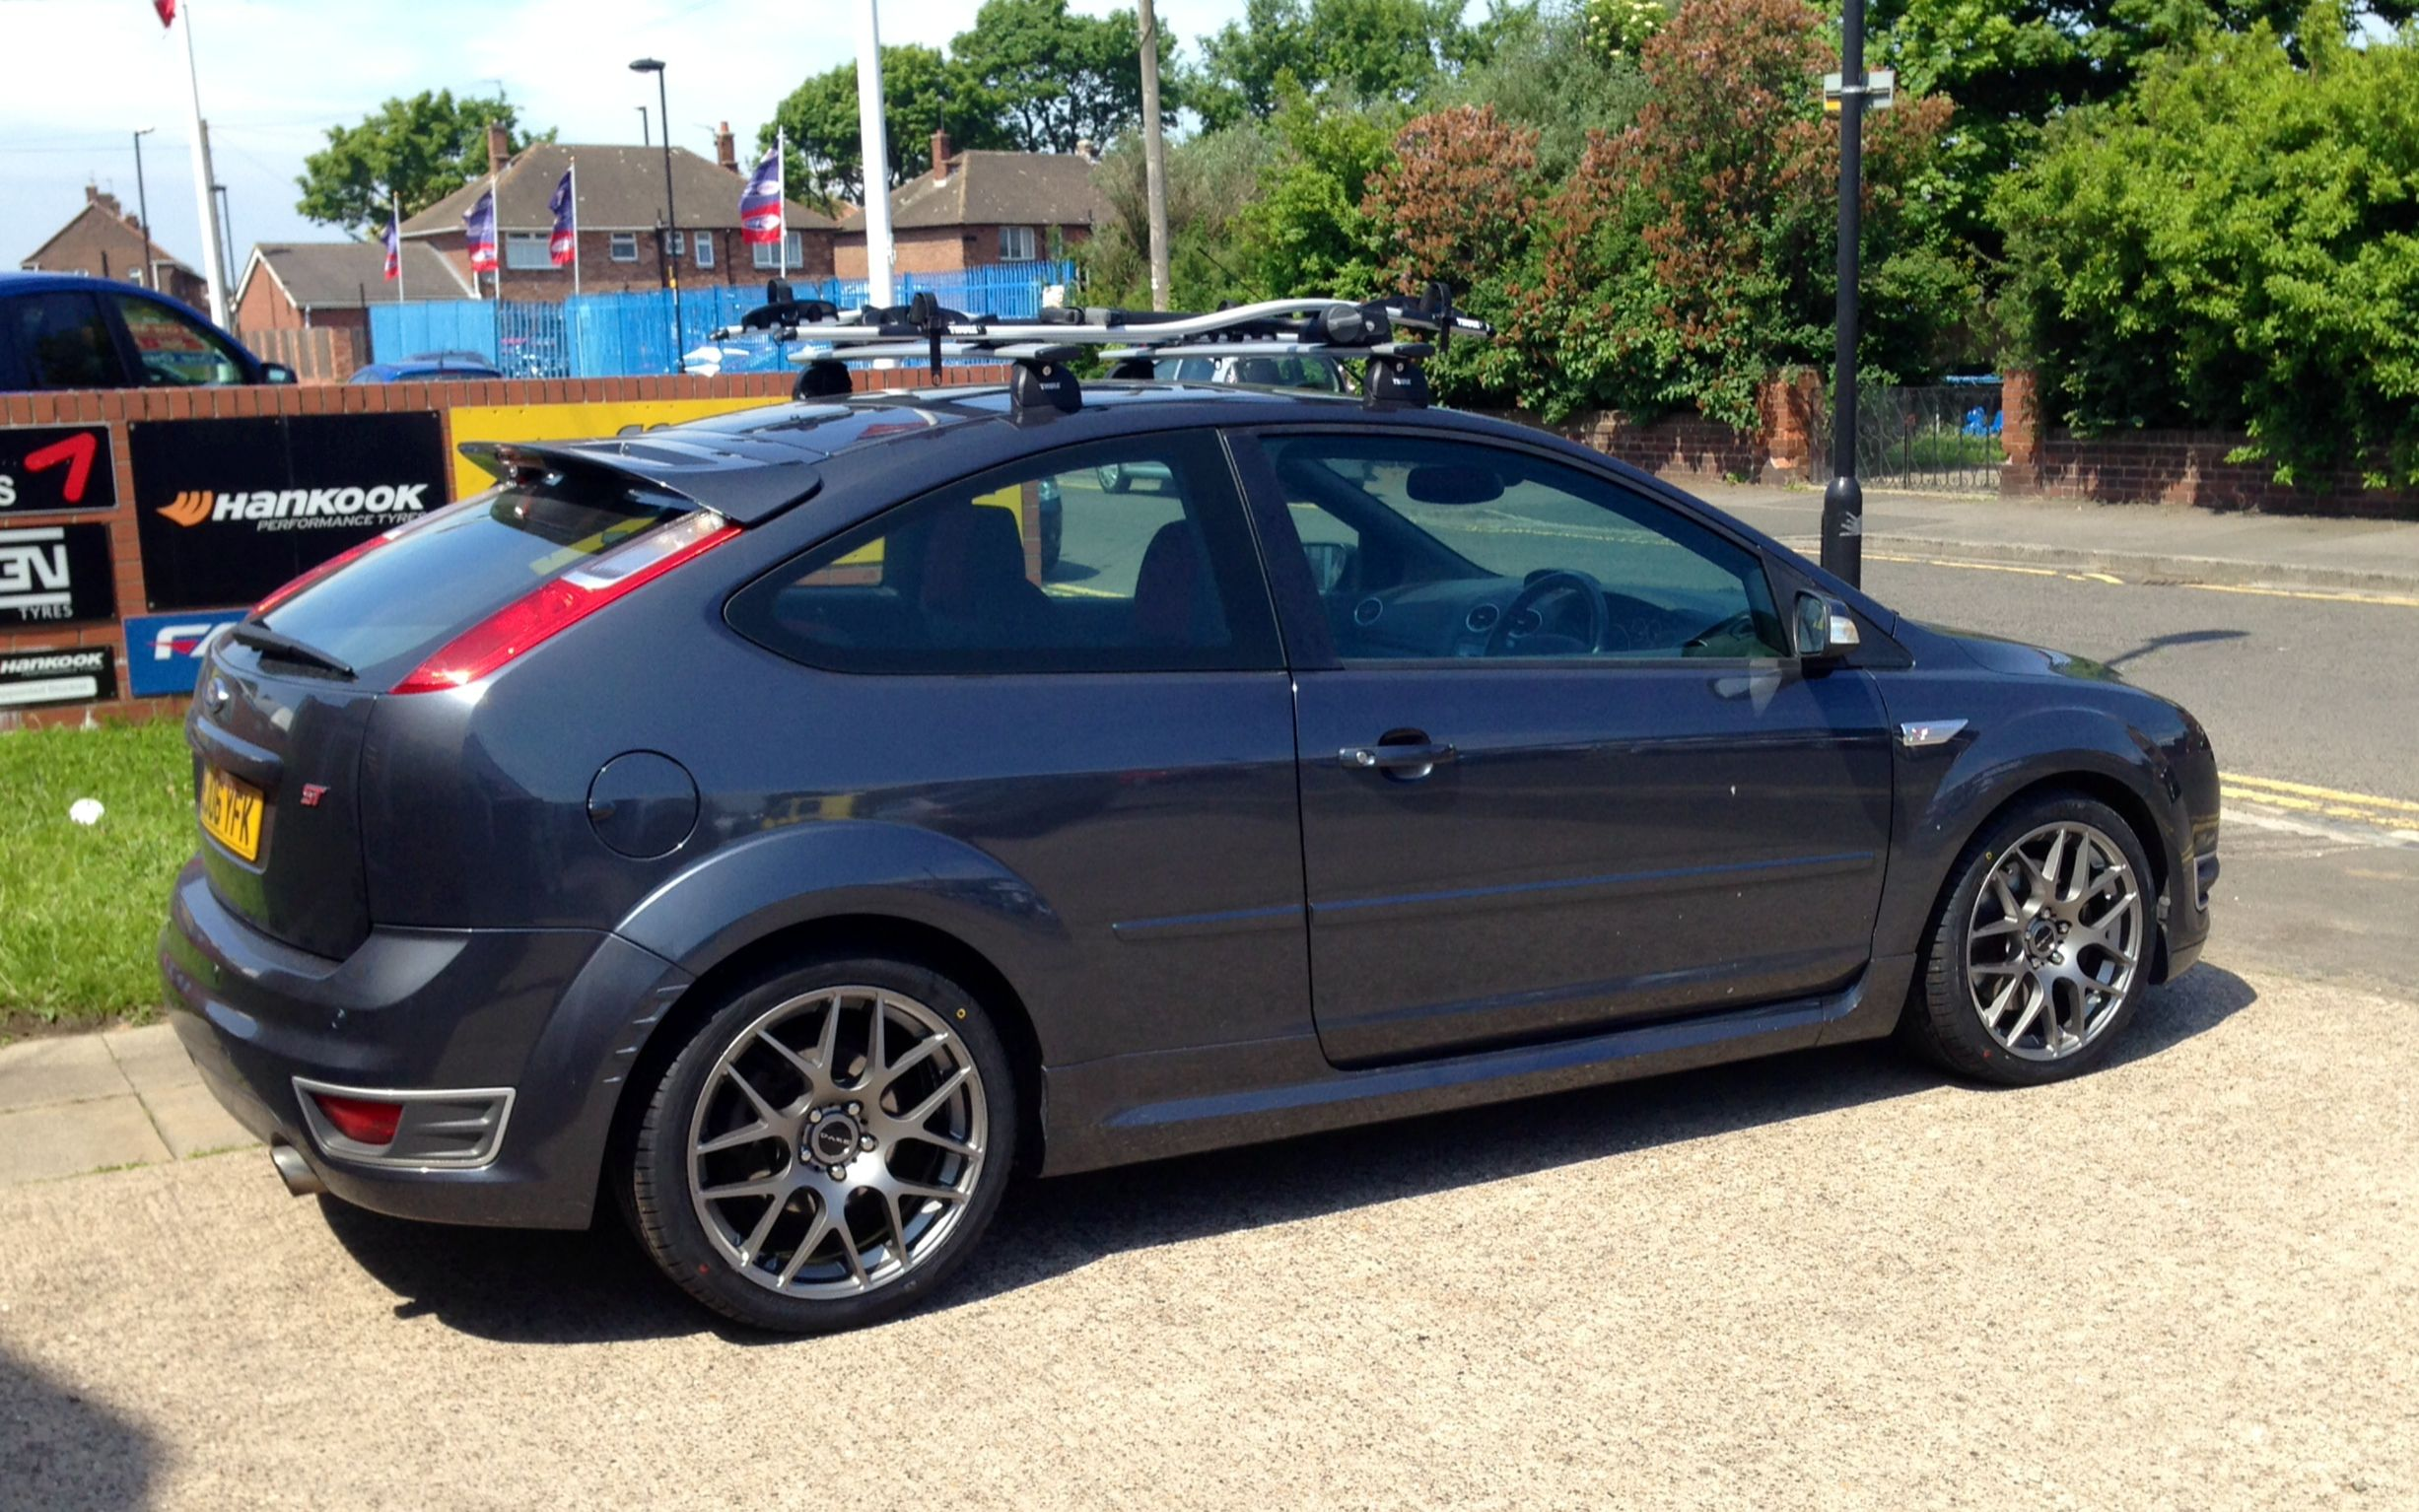 Ford Focus On 18 Dare X2 Alloy Wheels At Foxhunters Tyres Alloys